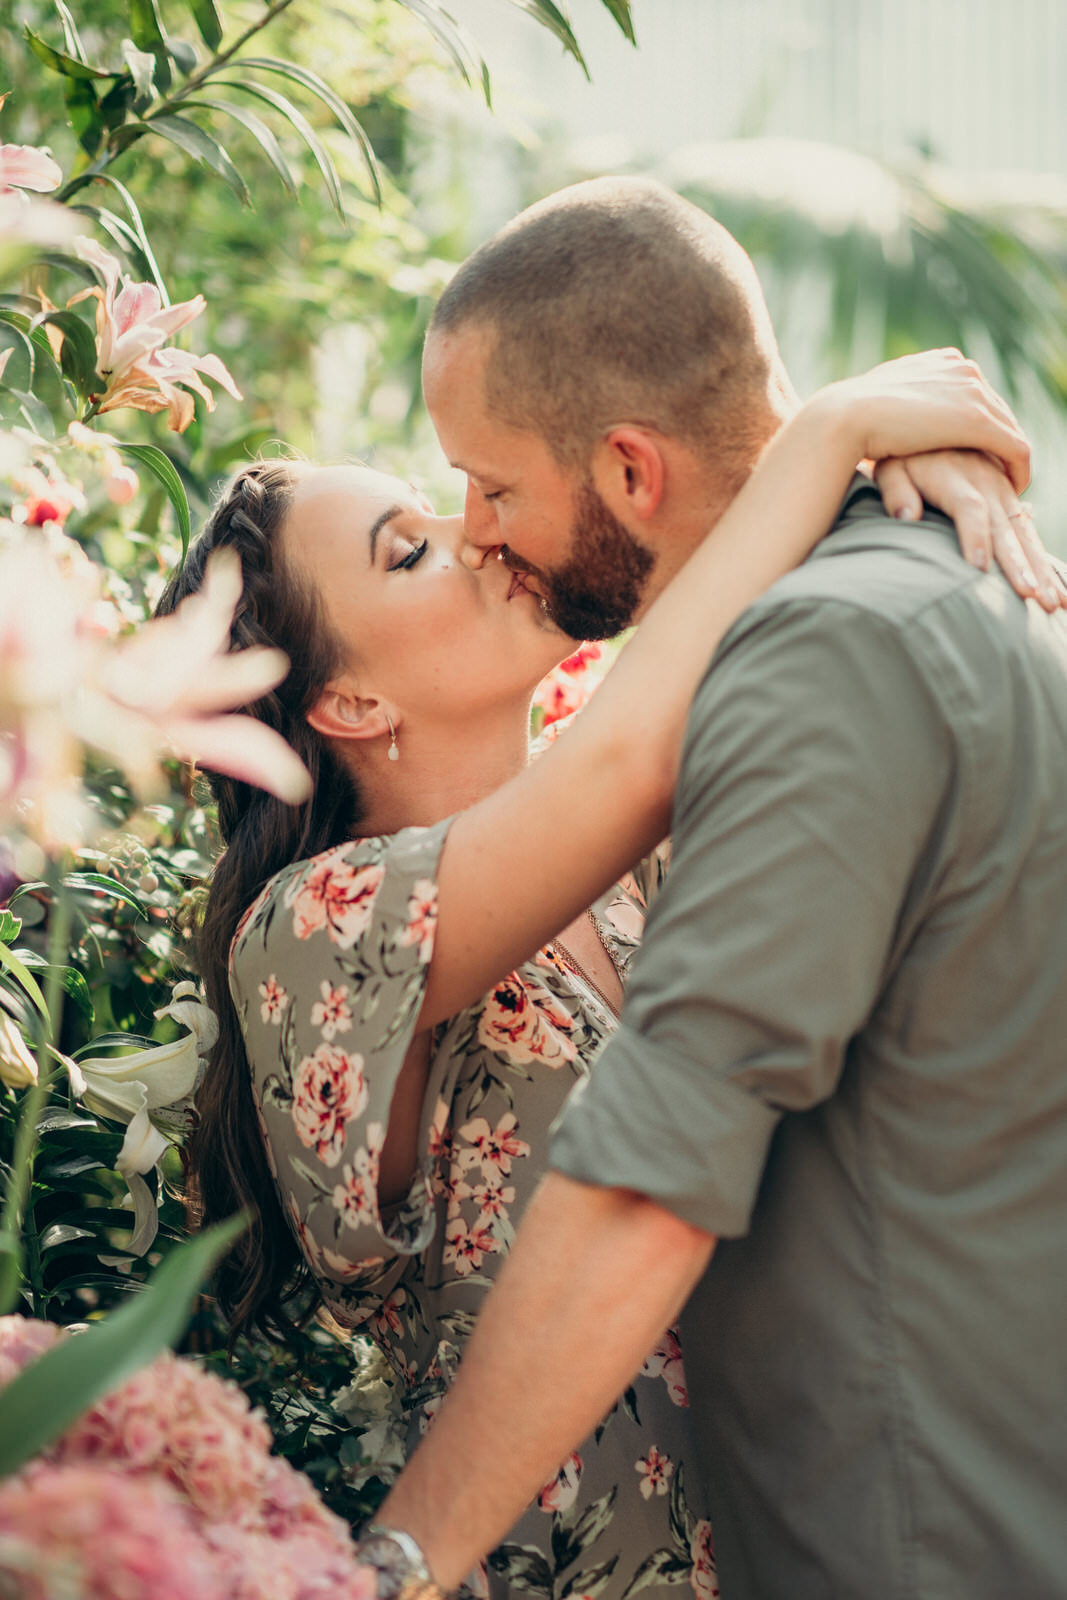 royal-botanical-gardens-engagement-shoot